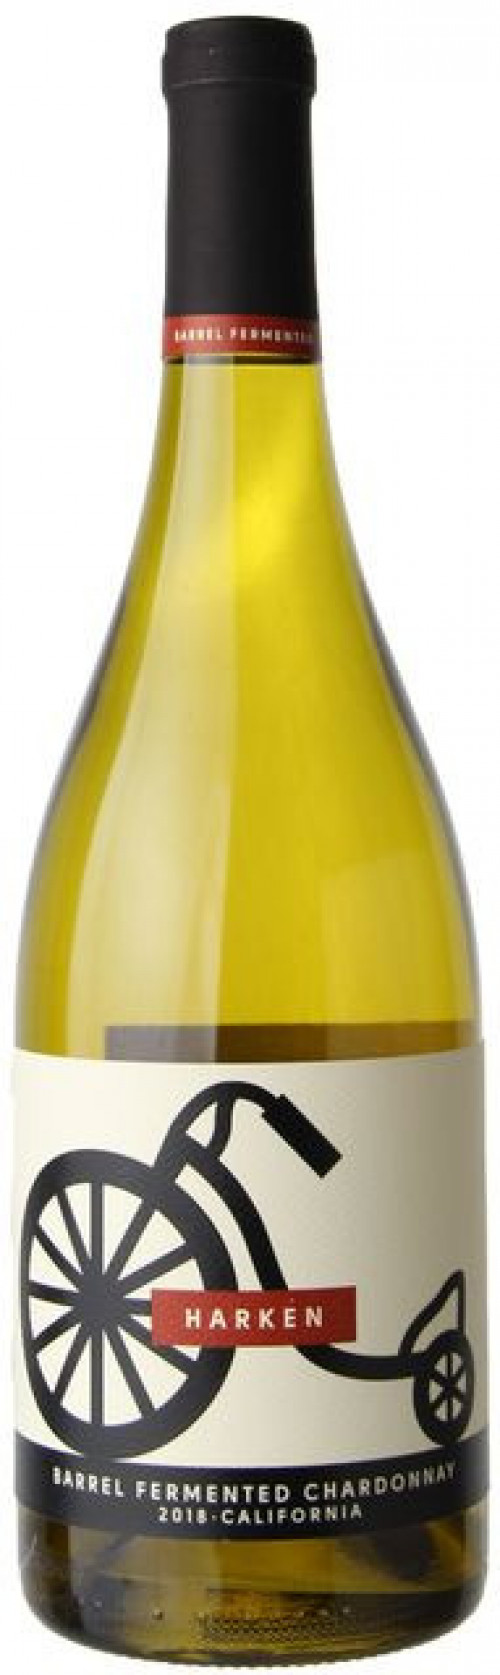 Harken Barrel Fermented Chardonnay 750ml